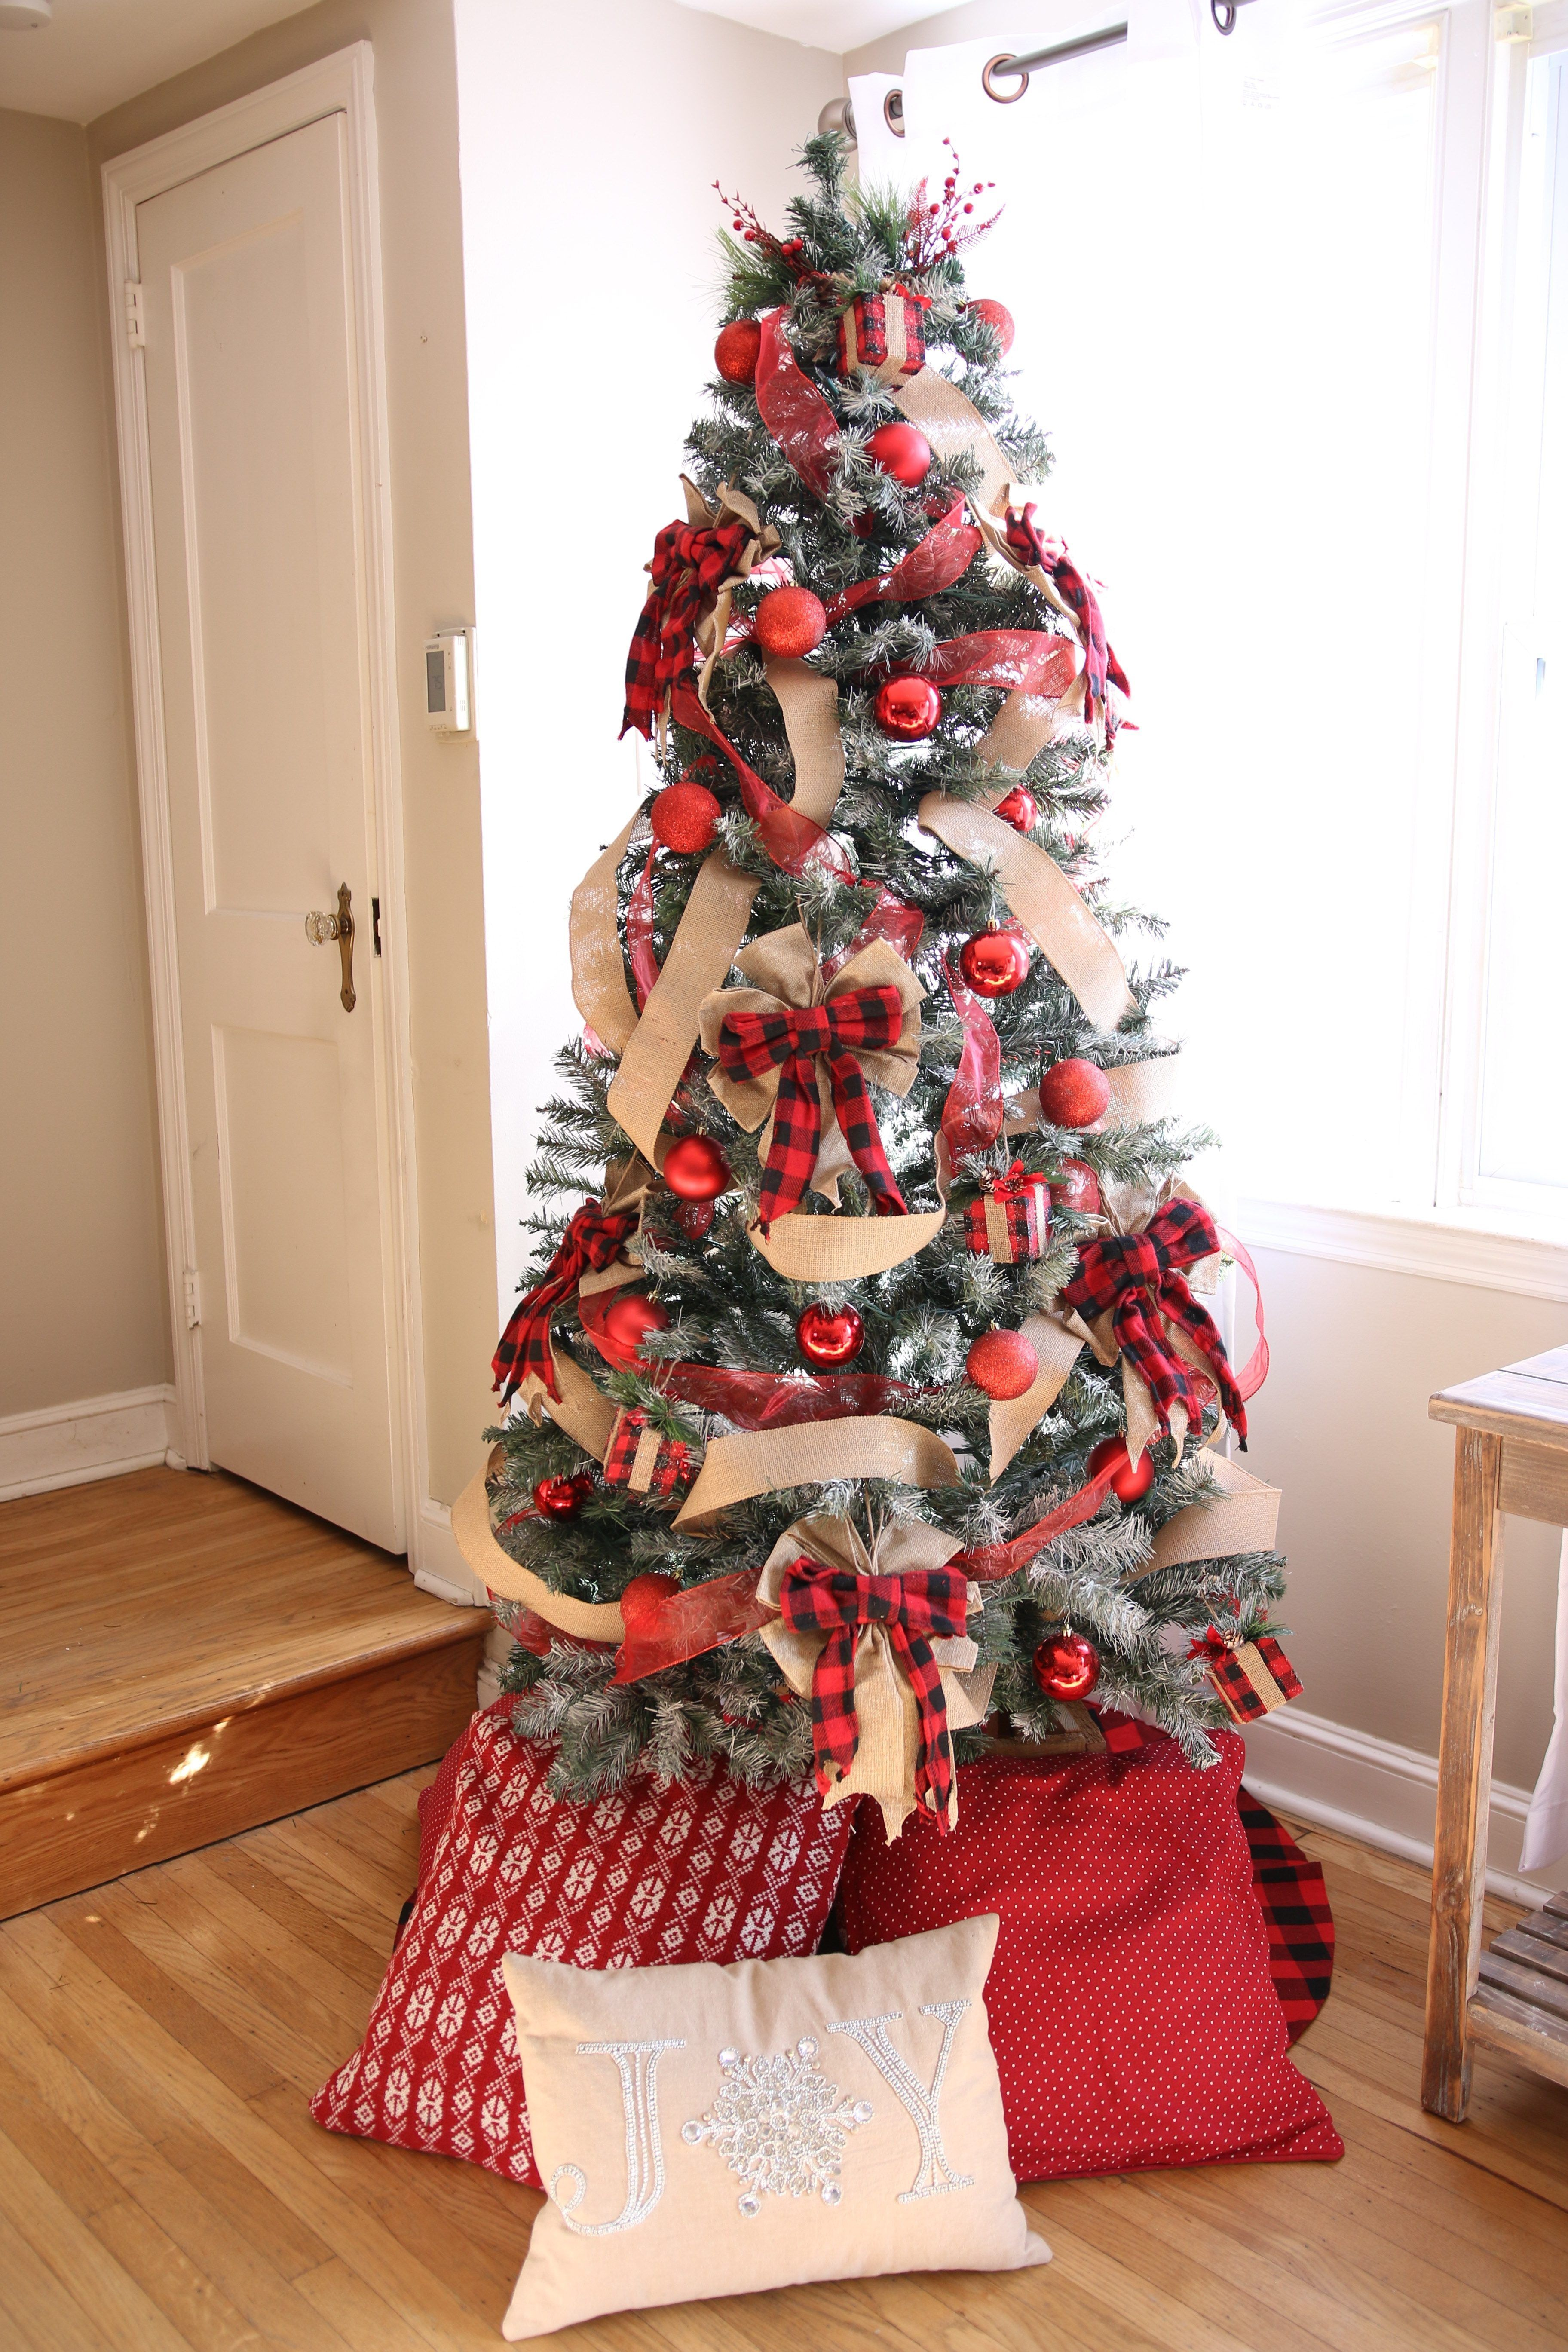 Christmas Decorations 2018 (With images) Christmas tree